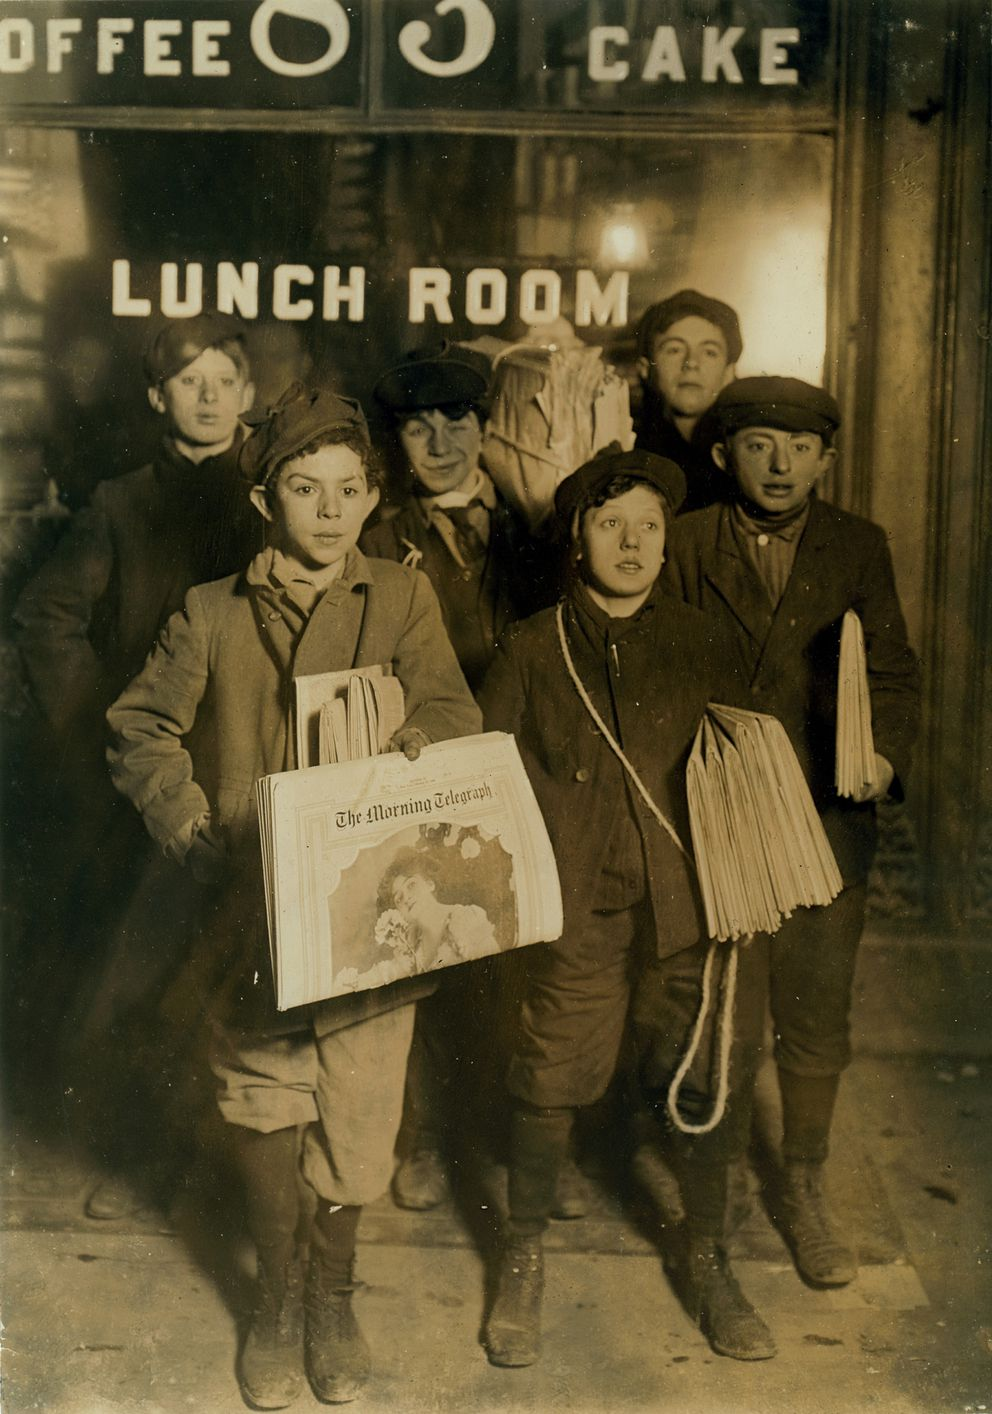 Newsboys selling on Brooklyn Bridge. Sunday, February 23rd, 1908. Photo by Lewis W. Hine (Library of Congress)